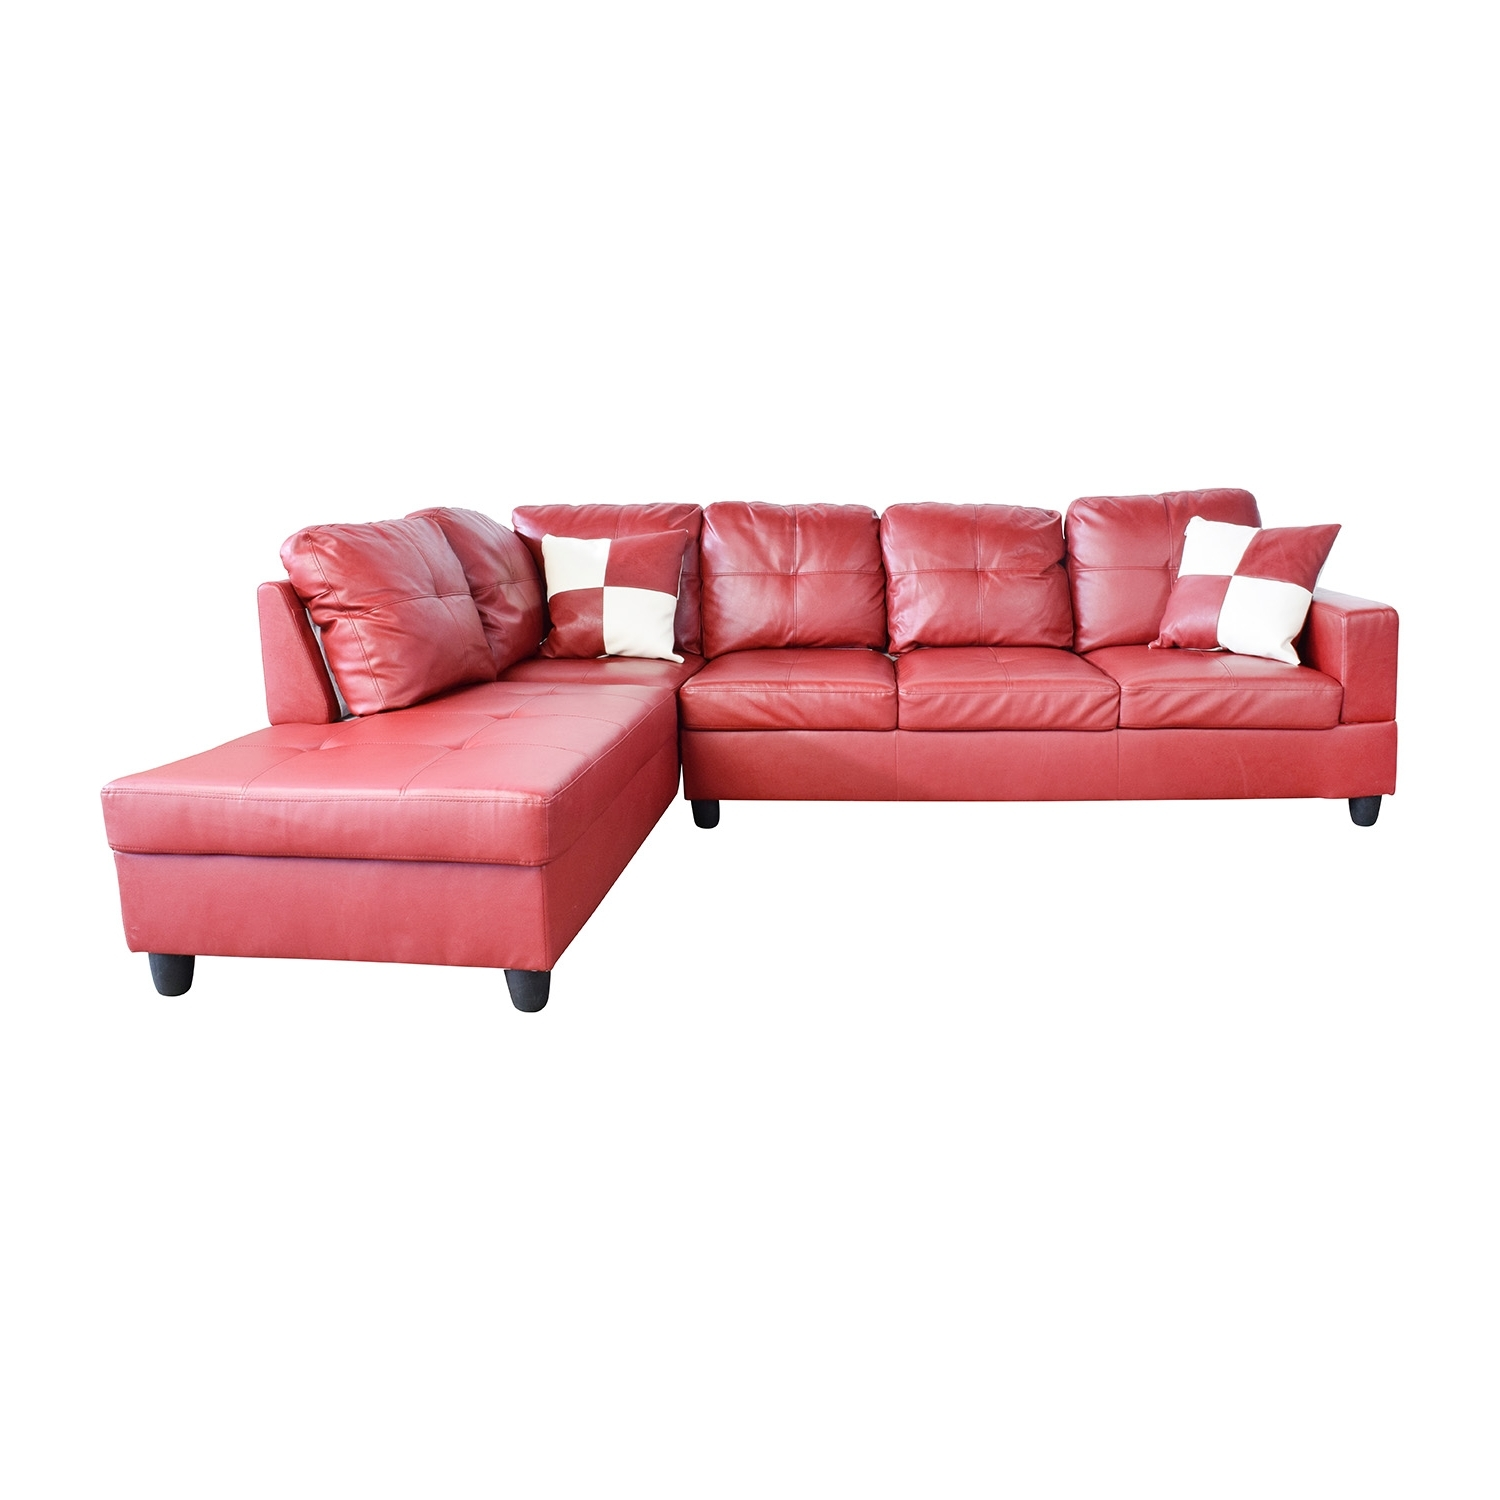 [%76% Off – Beverly Furniture Beverly Furniture Red Faux Leather With Latest Red Faux Leather Sectionals|Red Faux Leather Sectionals For Popular 76% Off – Beverly Furniture Beverly Furniture Red Faux Leather|Popular Red Faux Leather Sectionals For 76% Off – Beverly Furniture Beverly Furniture Red Faux Leather|Most Current 76% Off – Beverly Furniture Beverly Furniture Red Faux Leather Pertaining To Red Faux Leather Sectionals%] (View 1 of 20)